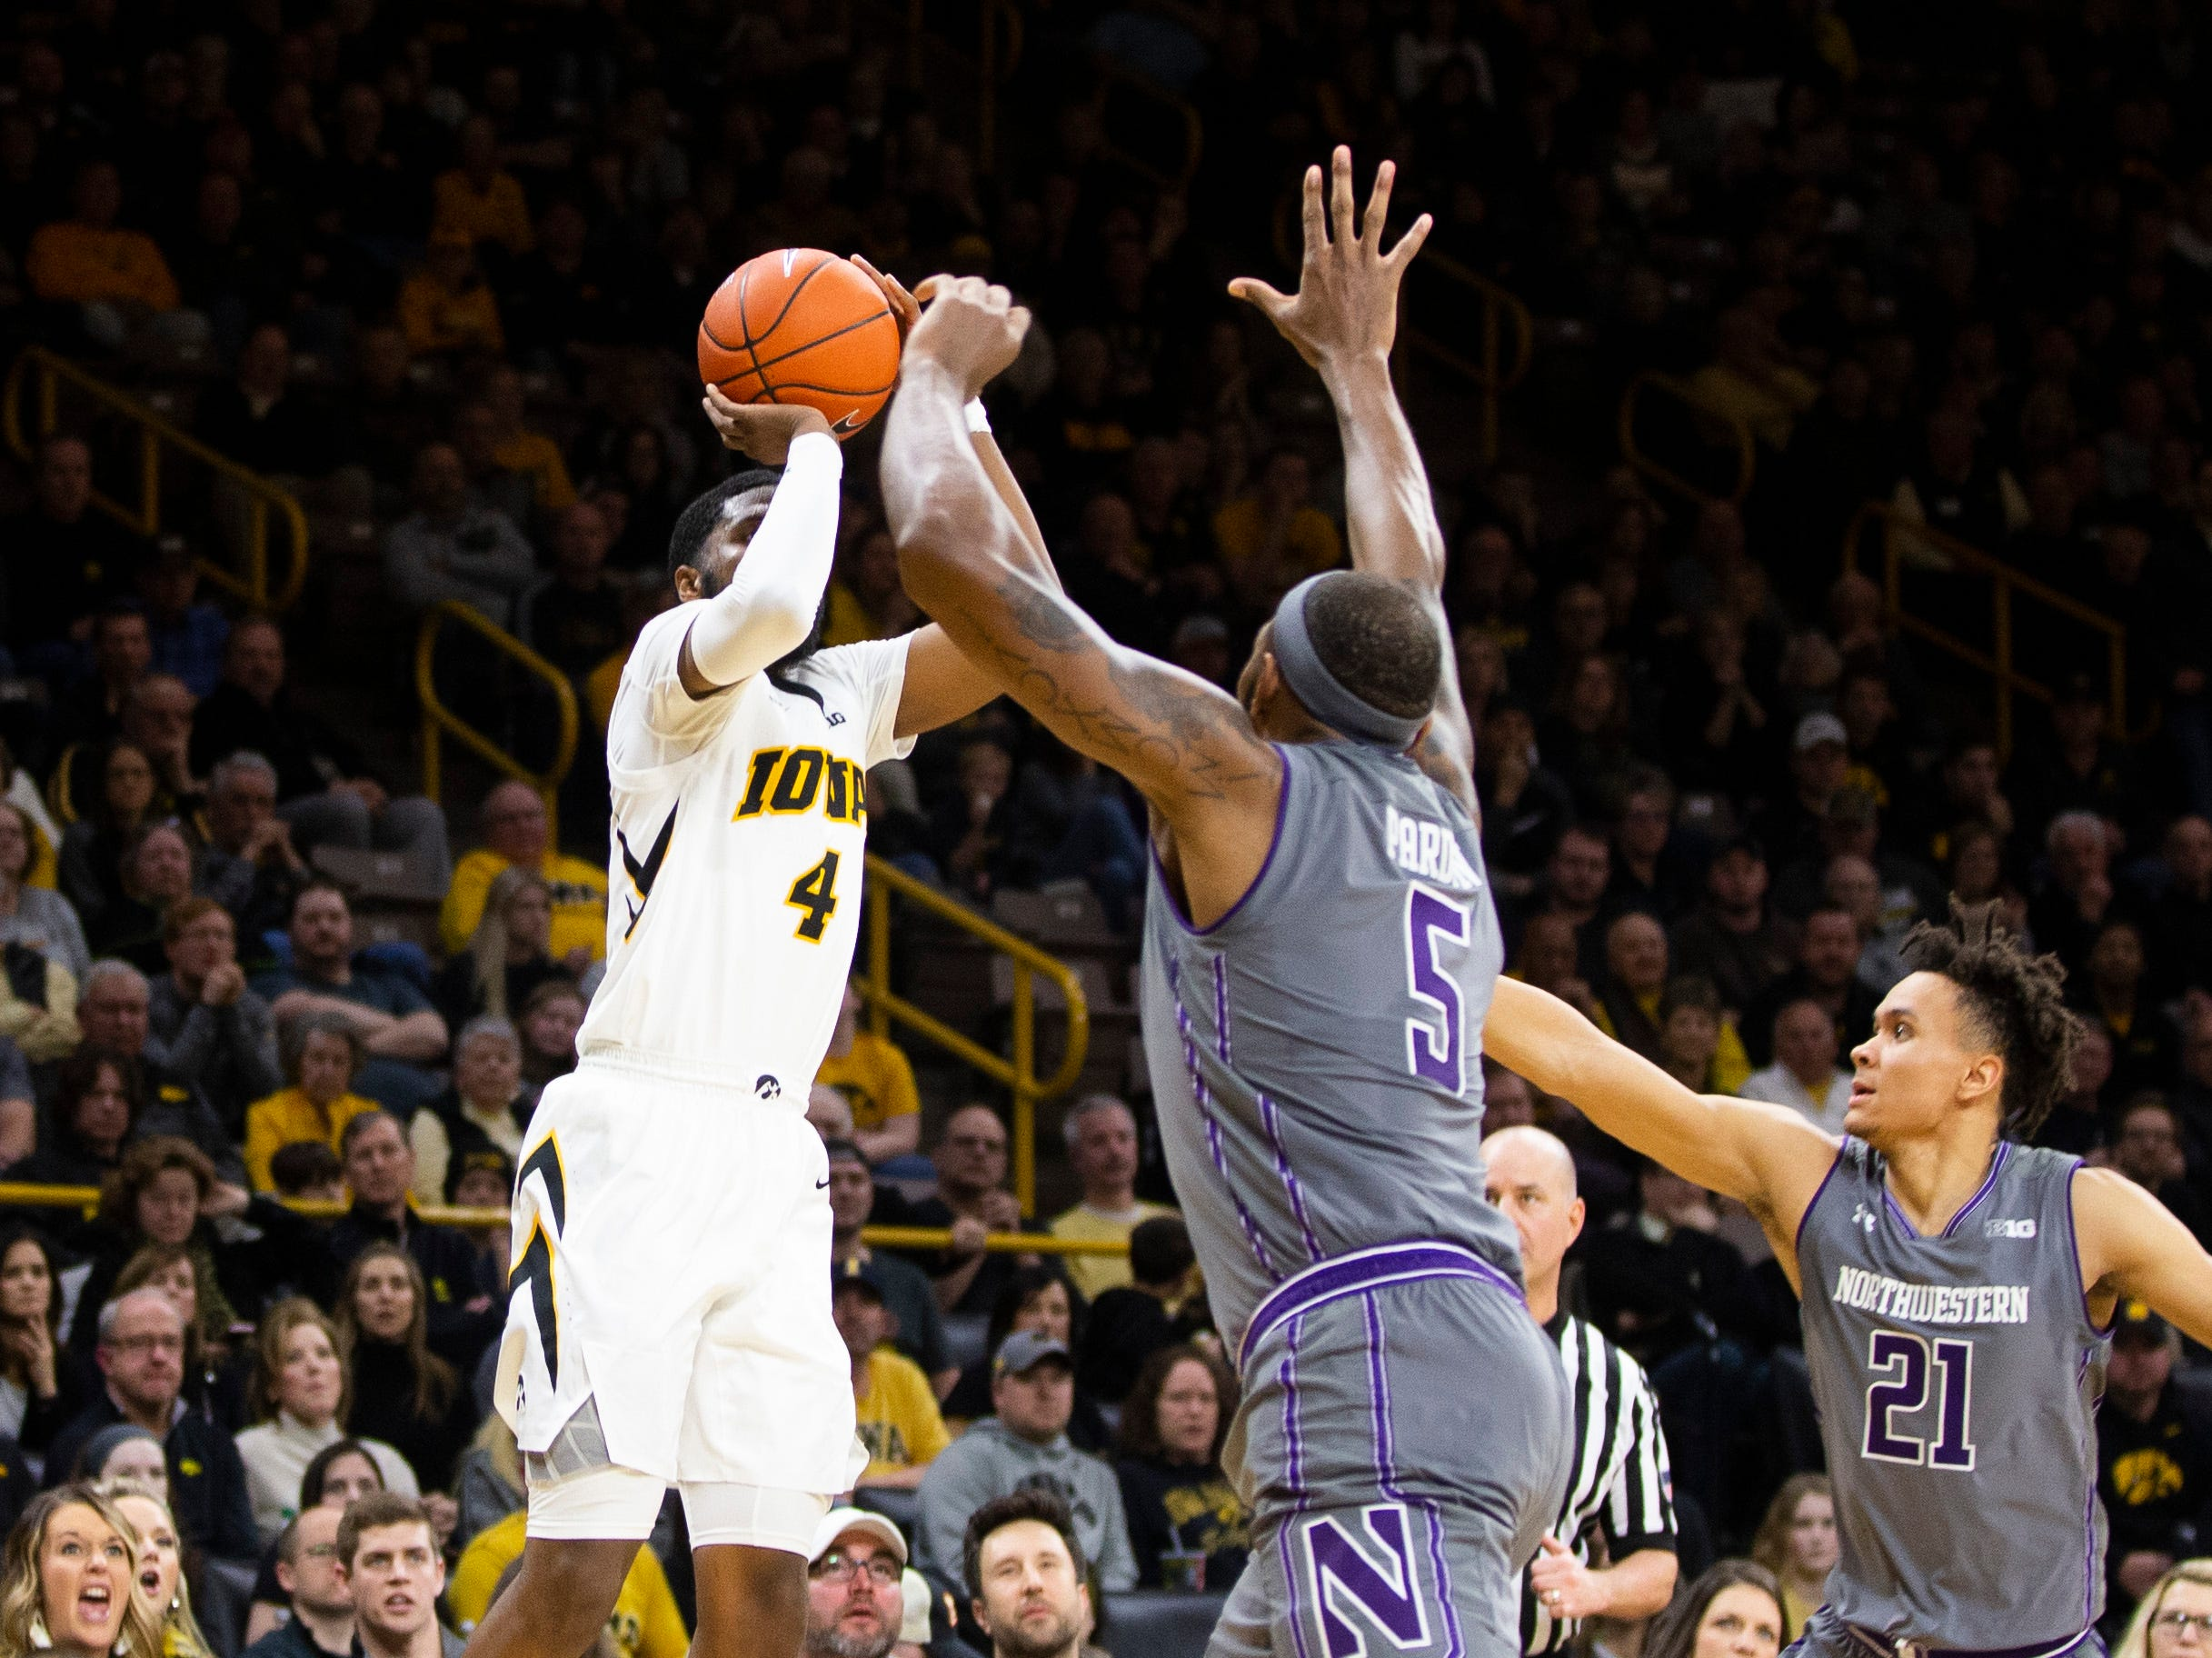 Iowa guard Isaiah Moss (4) makes a 3-point basket while Northwestern center Dererk Pardon (5) and forward A.J. Turner (21) defend during a NCAA Big Ten Conference men's basketball game on Sunday, Feb. 10, 2019 at Carver-Hawkeye Arena in Iowa City, Iowa.